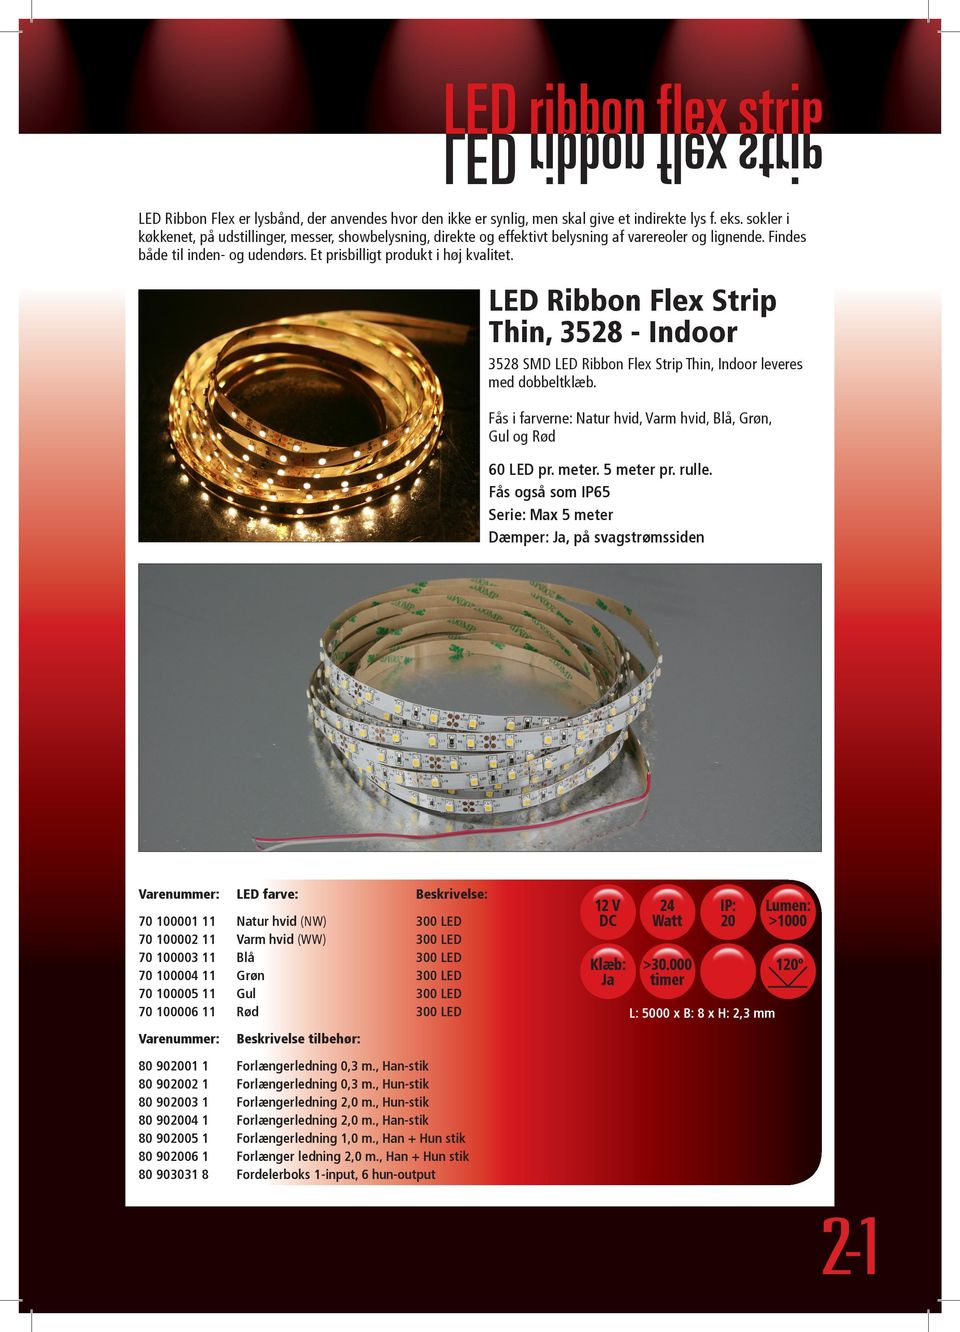 LED Ribbon Flex Strip Thin, 3528 - Indoor 3528 SMD LED Ribbon Flex Strip Thin, Indoor leveres med Fås i farverne: Natur hvid, Varm hvid, Blå, Grøn, Gul og Rød 60 LED pr. meter. 5 meter pr. rulle.